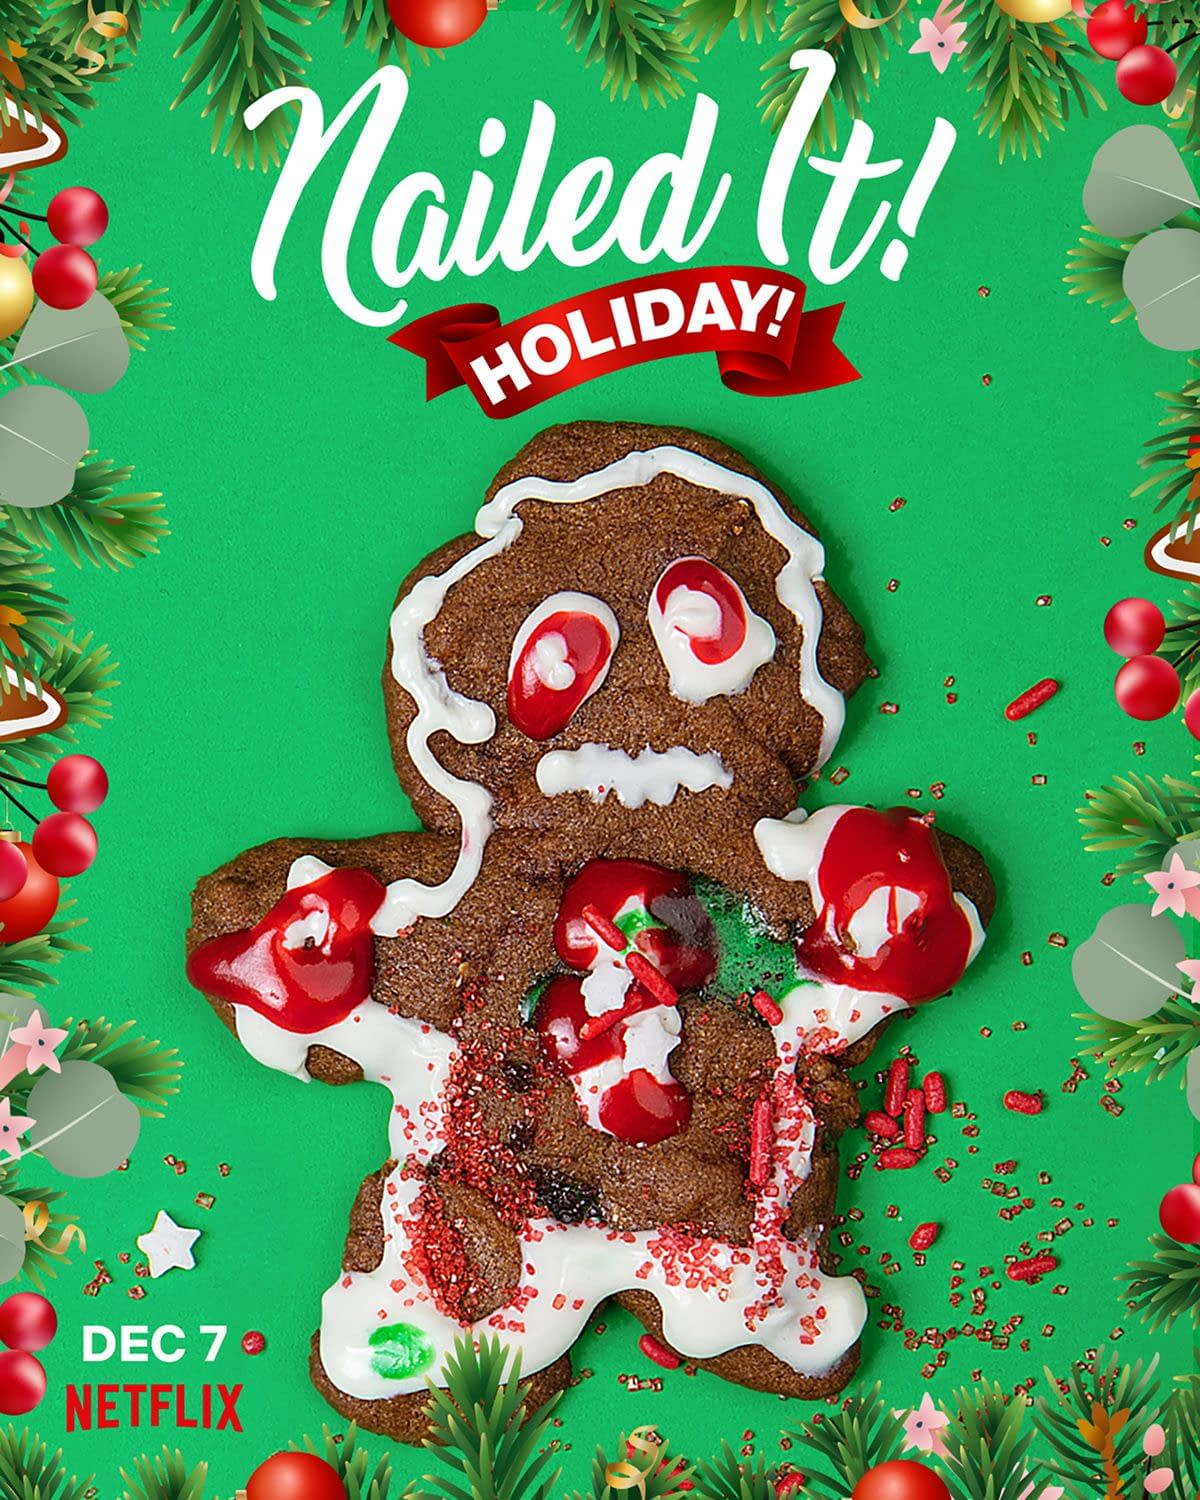 Nailed It! Holiday!: 'Tis the Season for Jesus Meatballs, Turkey Cakes and DIY Sweaters (BC REWIND)